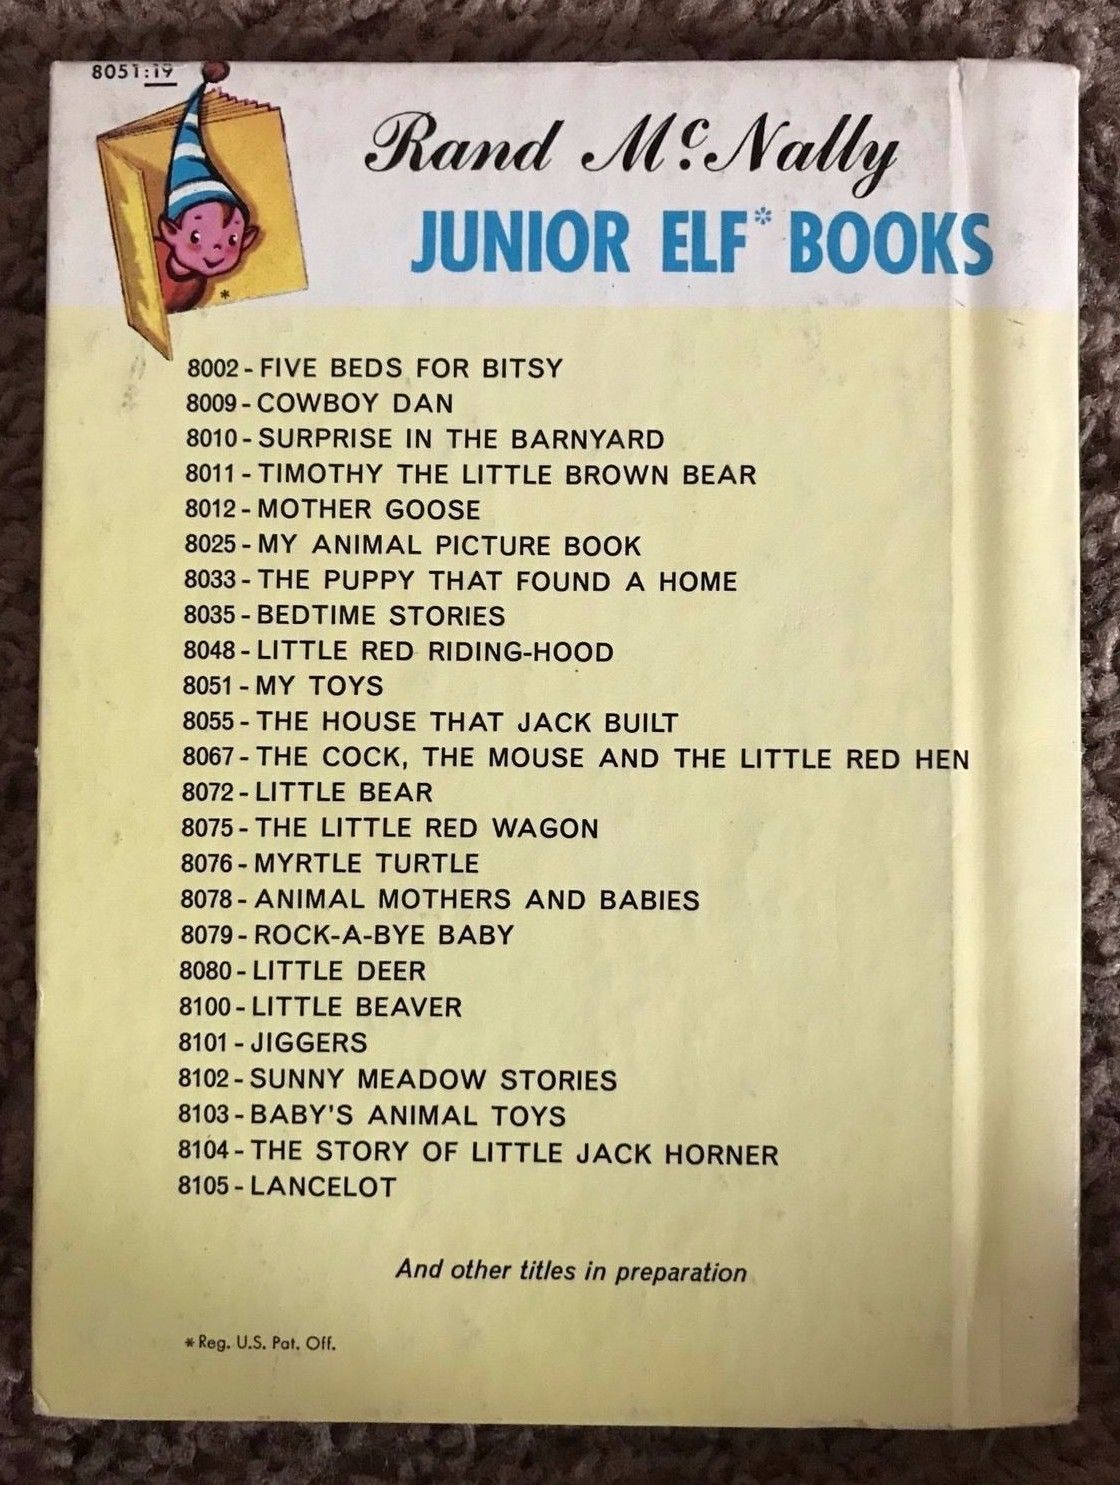 My Toys Rand McNally Junior Elf 8051:19 Hard Back Children's Book vintage 1950s